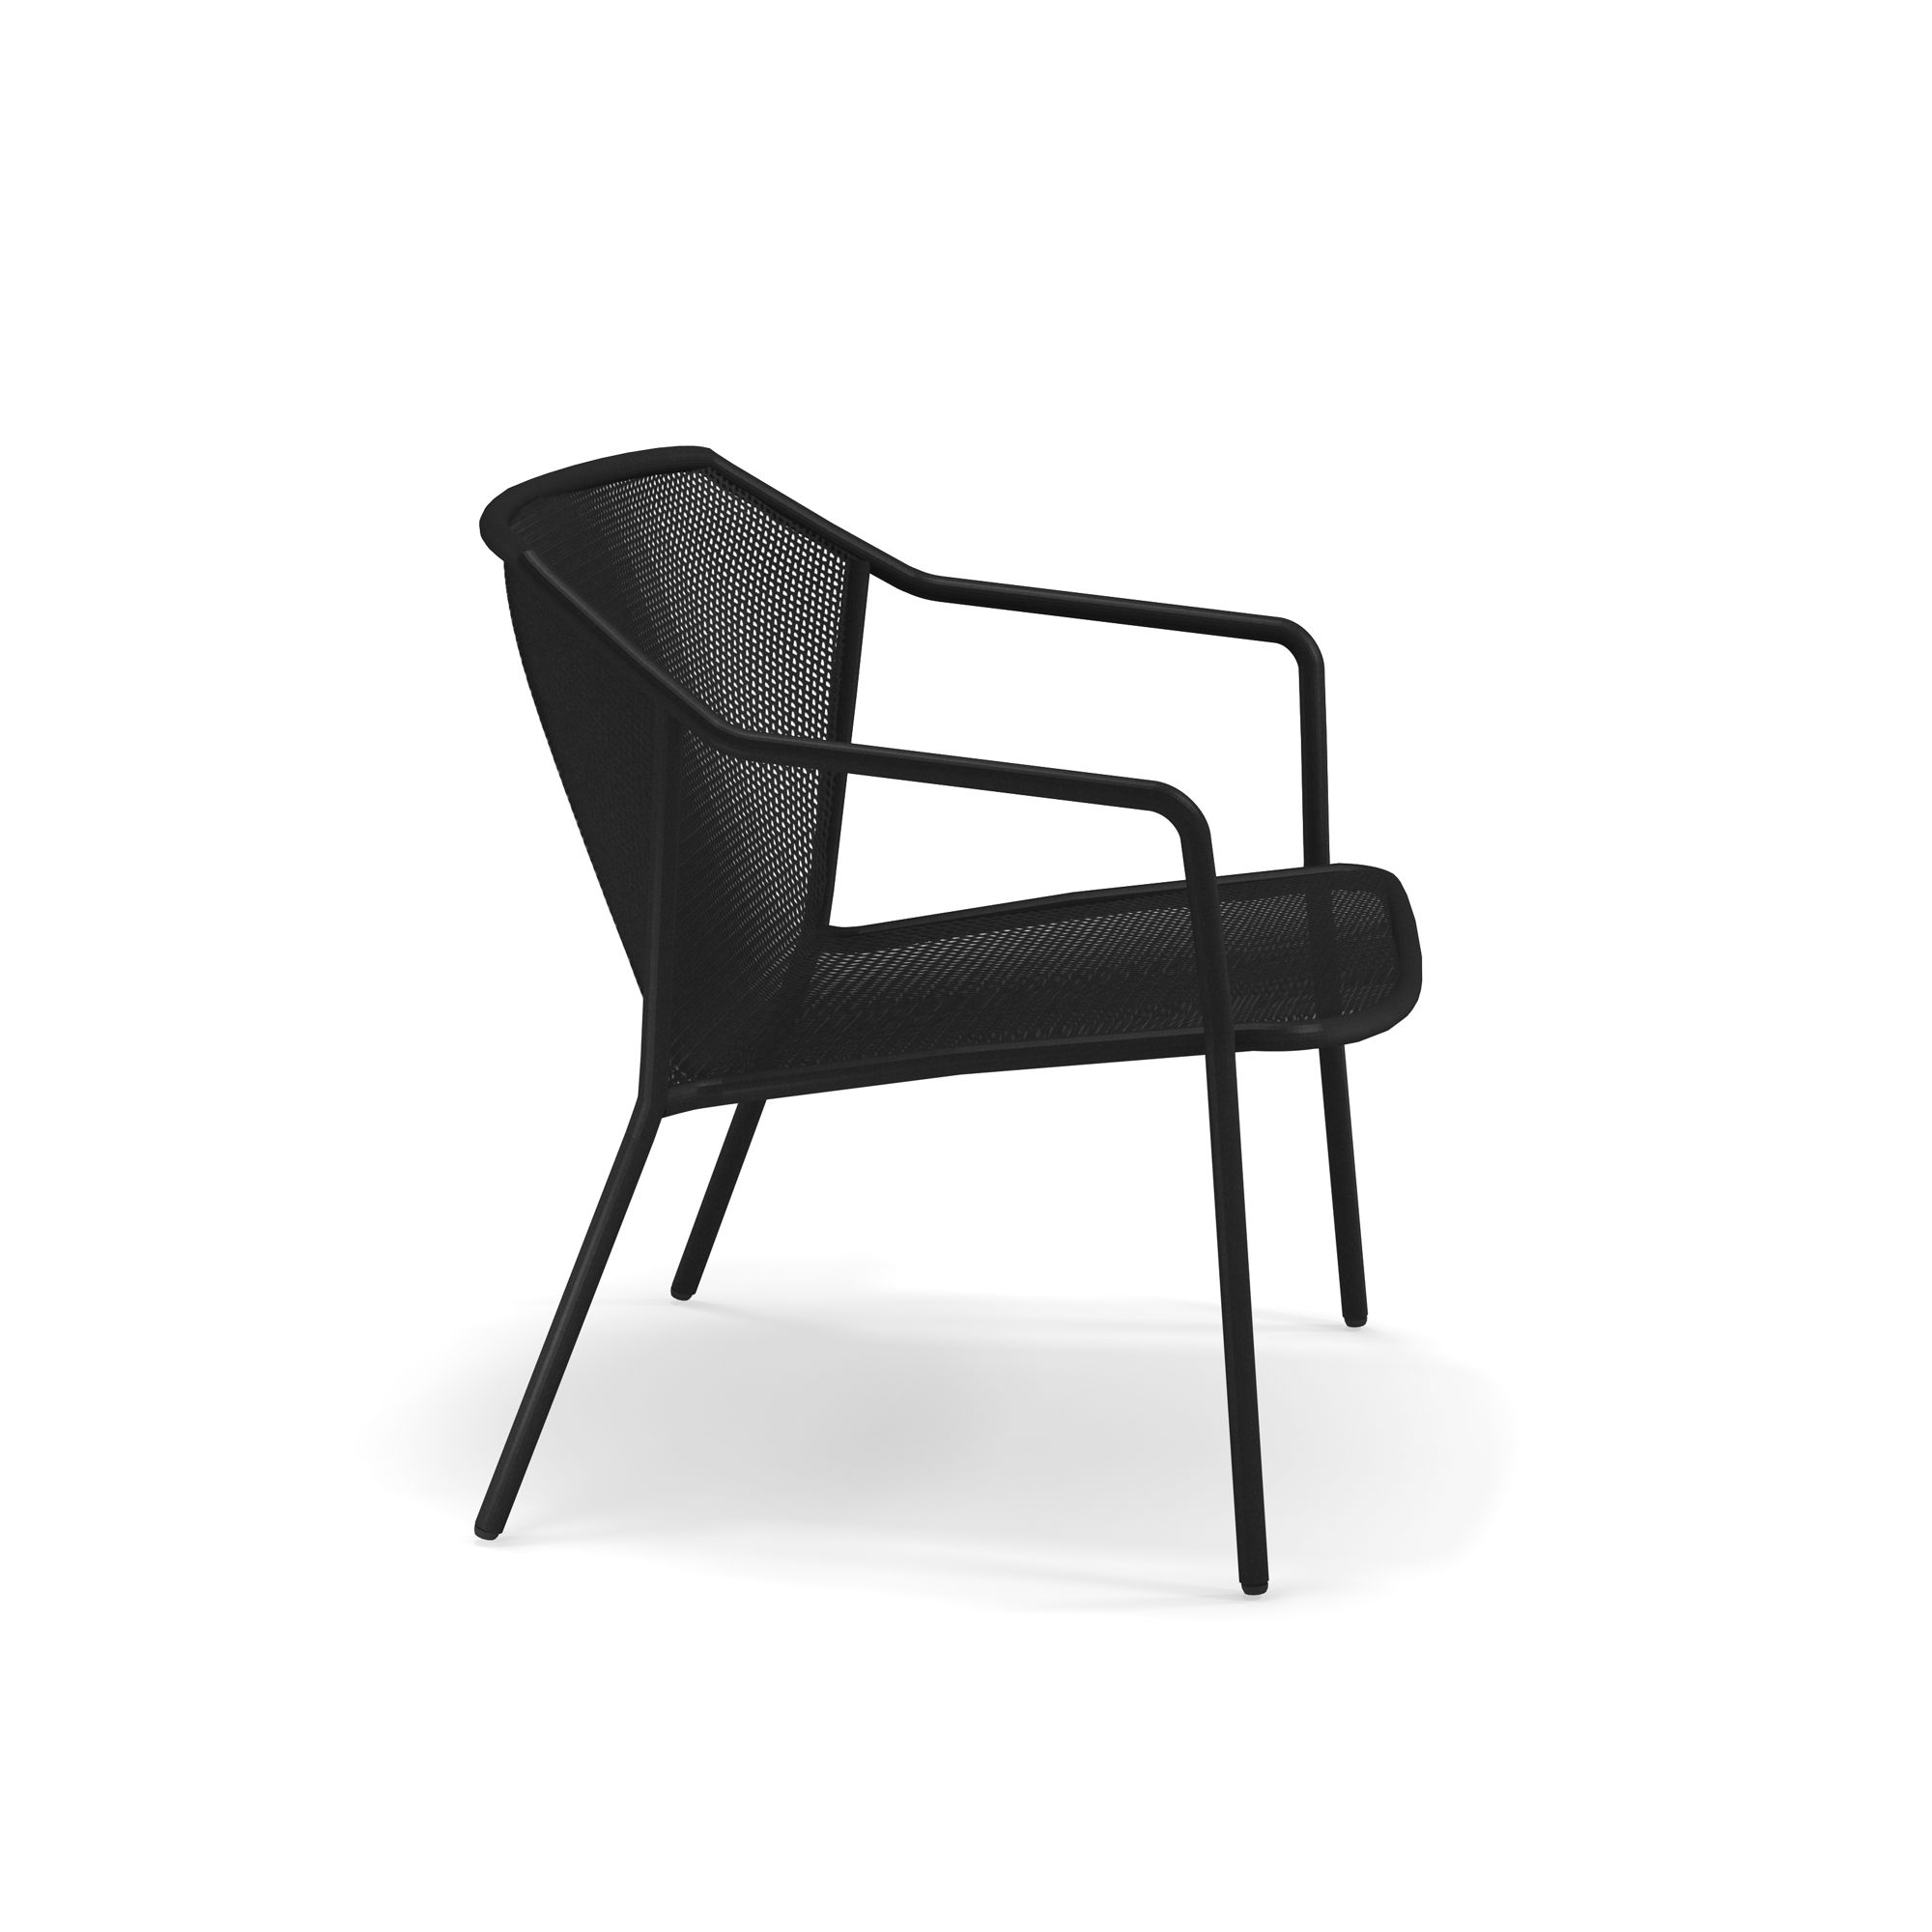 Darwin Lounge Chair - Set of 2 - <p>The ergonomic proportions and lightness of structural lines guarantee both comfort and adaptability. Darwin is a steel collection, which revisits classic themes, in a delicate metal sheet mesh placed within a contemporary geometric structure. The Darwin range consists of chair, armchair, tables, stool and counter table, sofa, lounge chair and coffee table. Defined by its exceptional style, Darwin is suited to all kinds of furnishing contexts.</p>